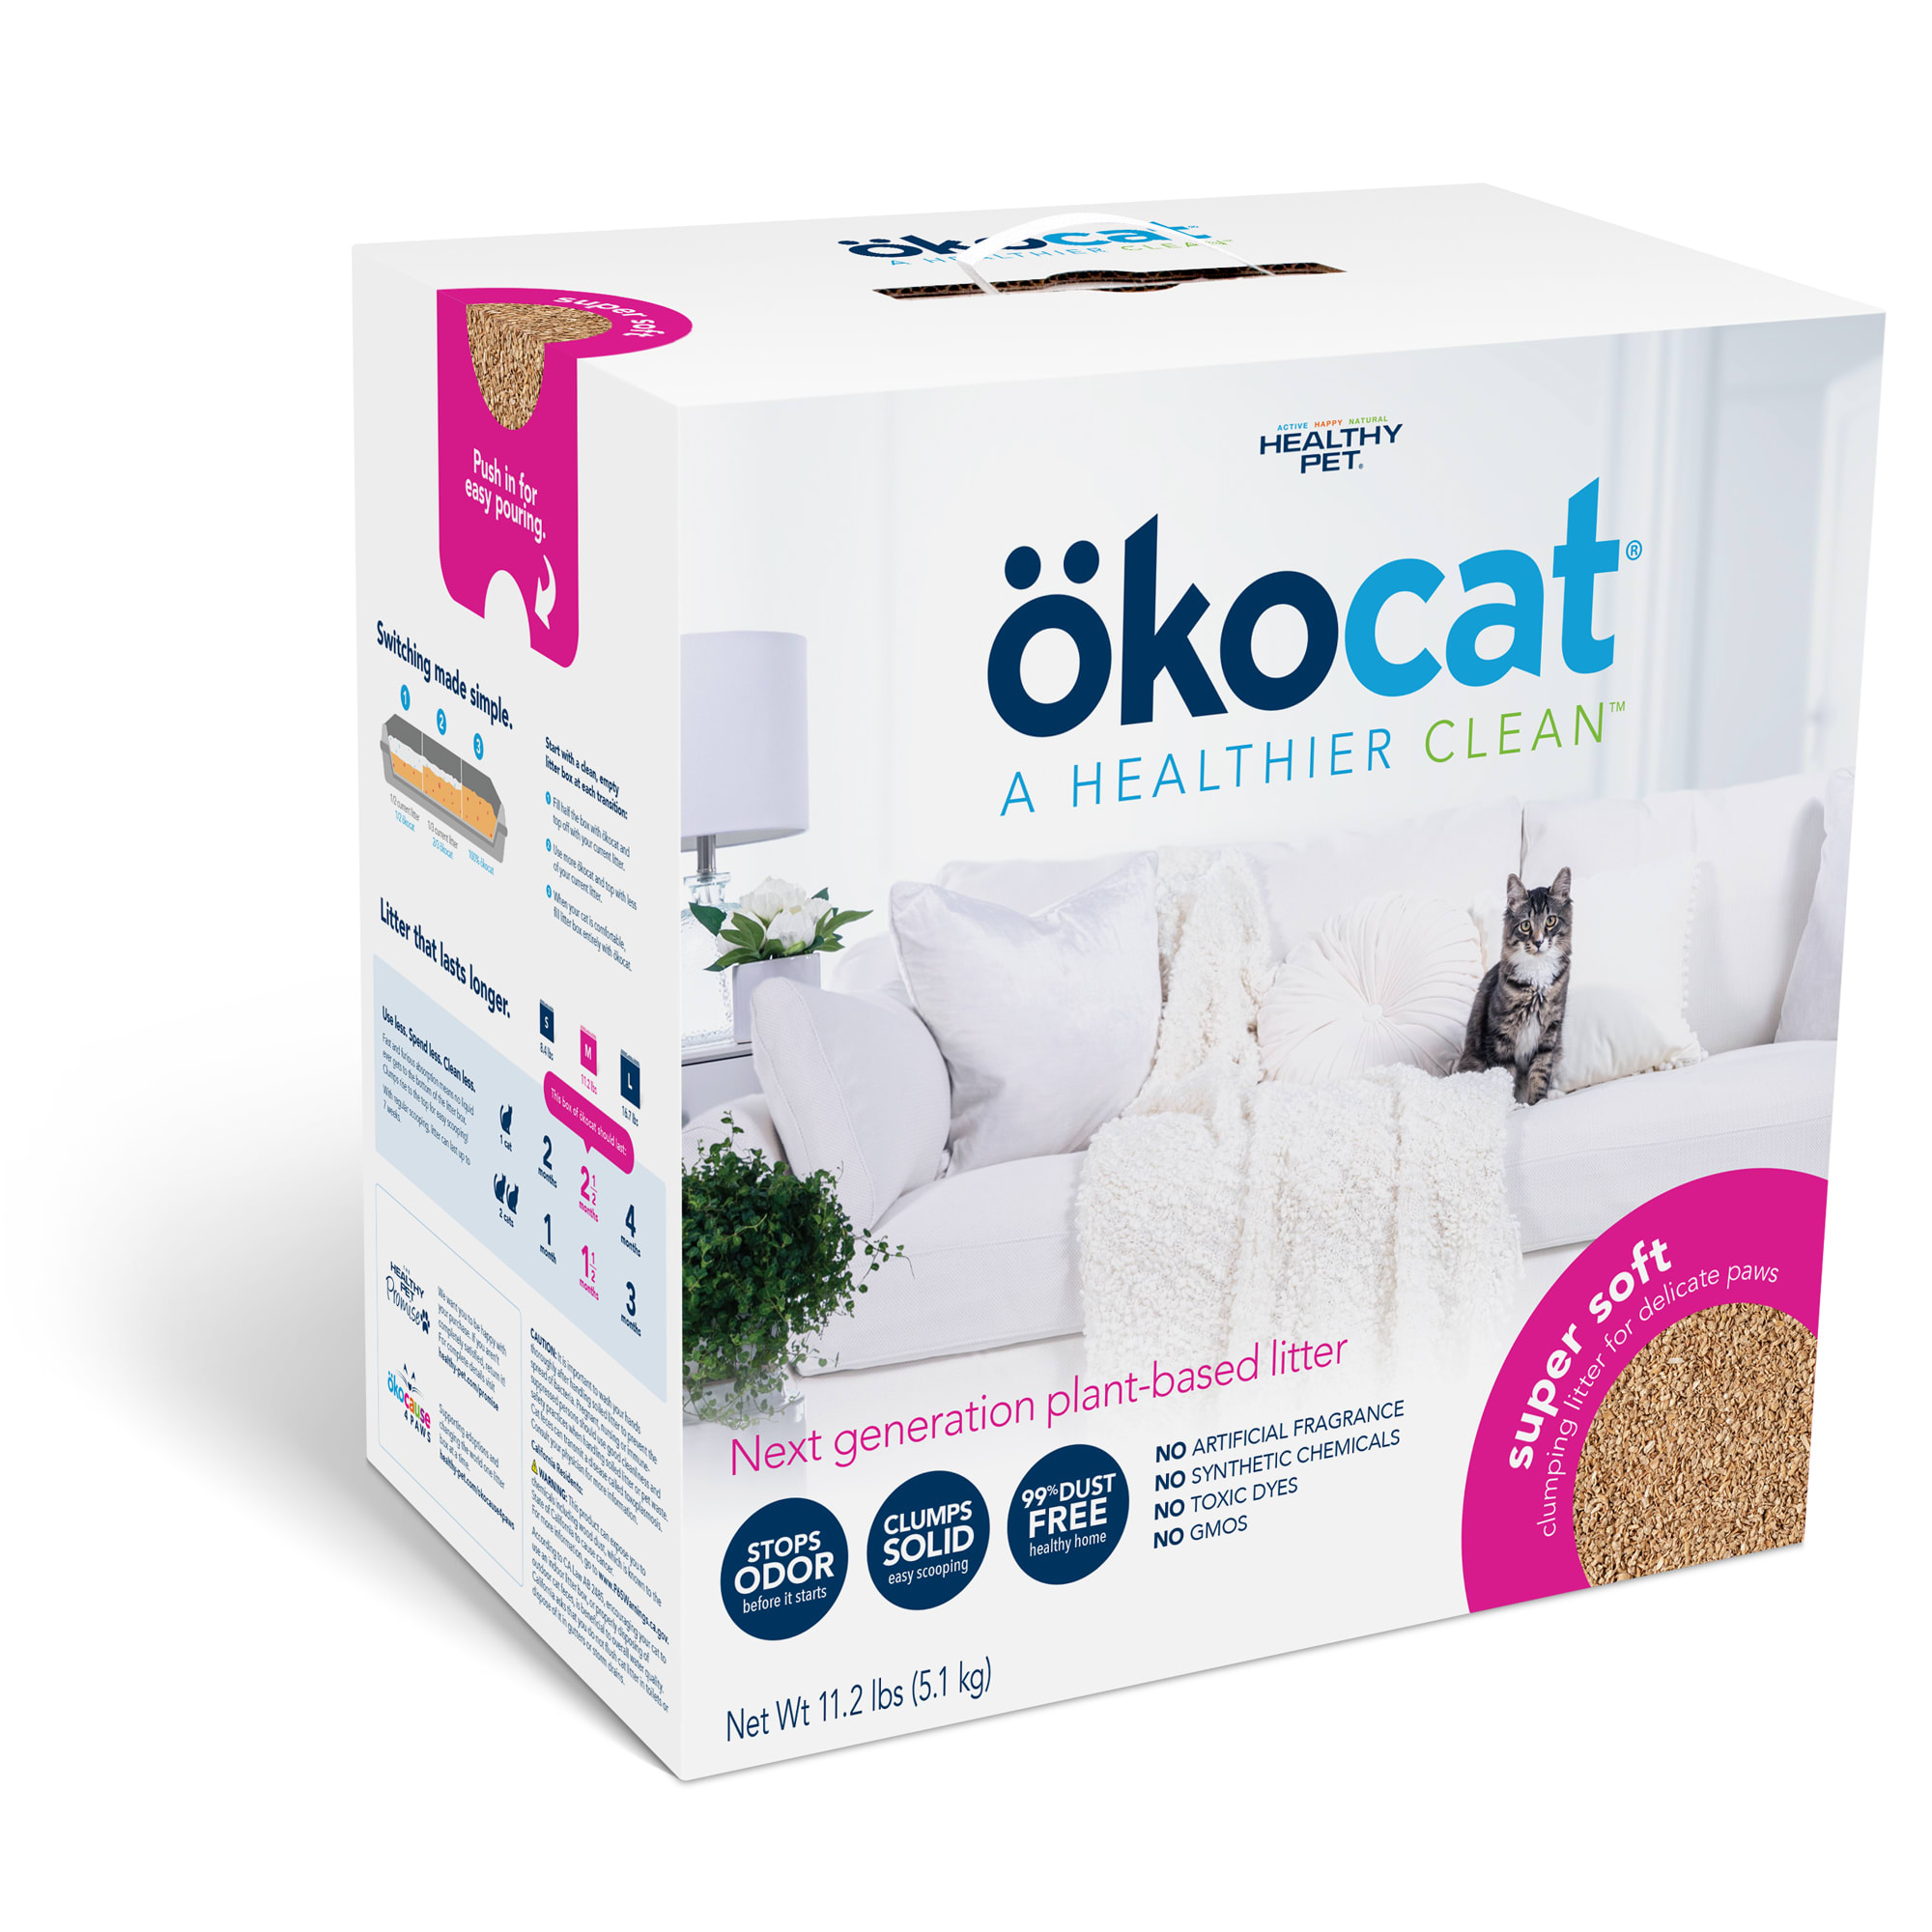 Okocat Super Soft Clumping Wood for Delicate Paws Cat Litter, 11.2 lbs.